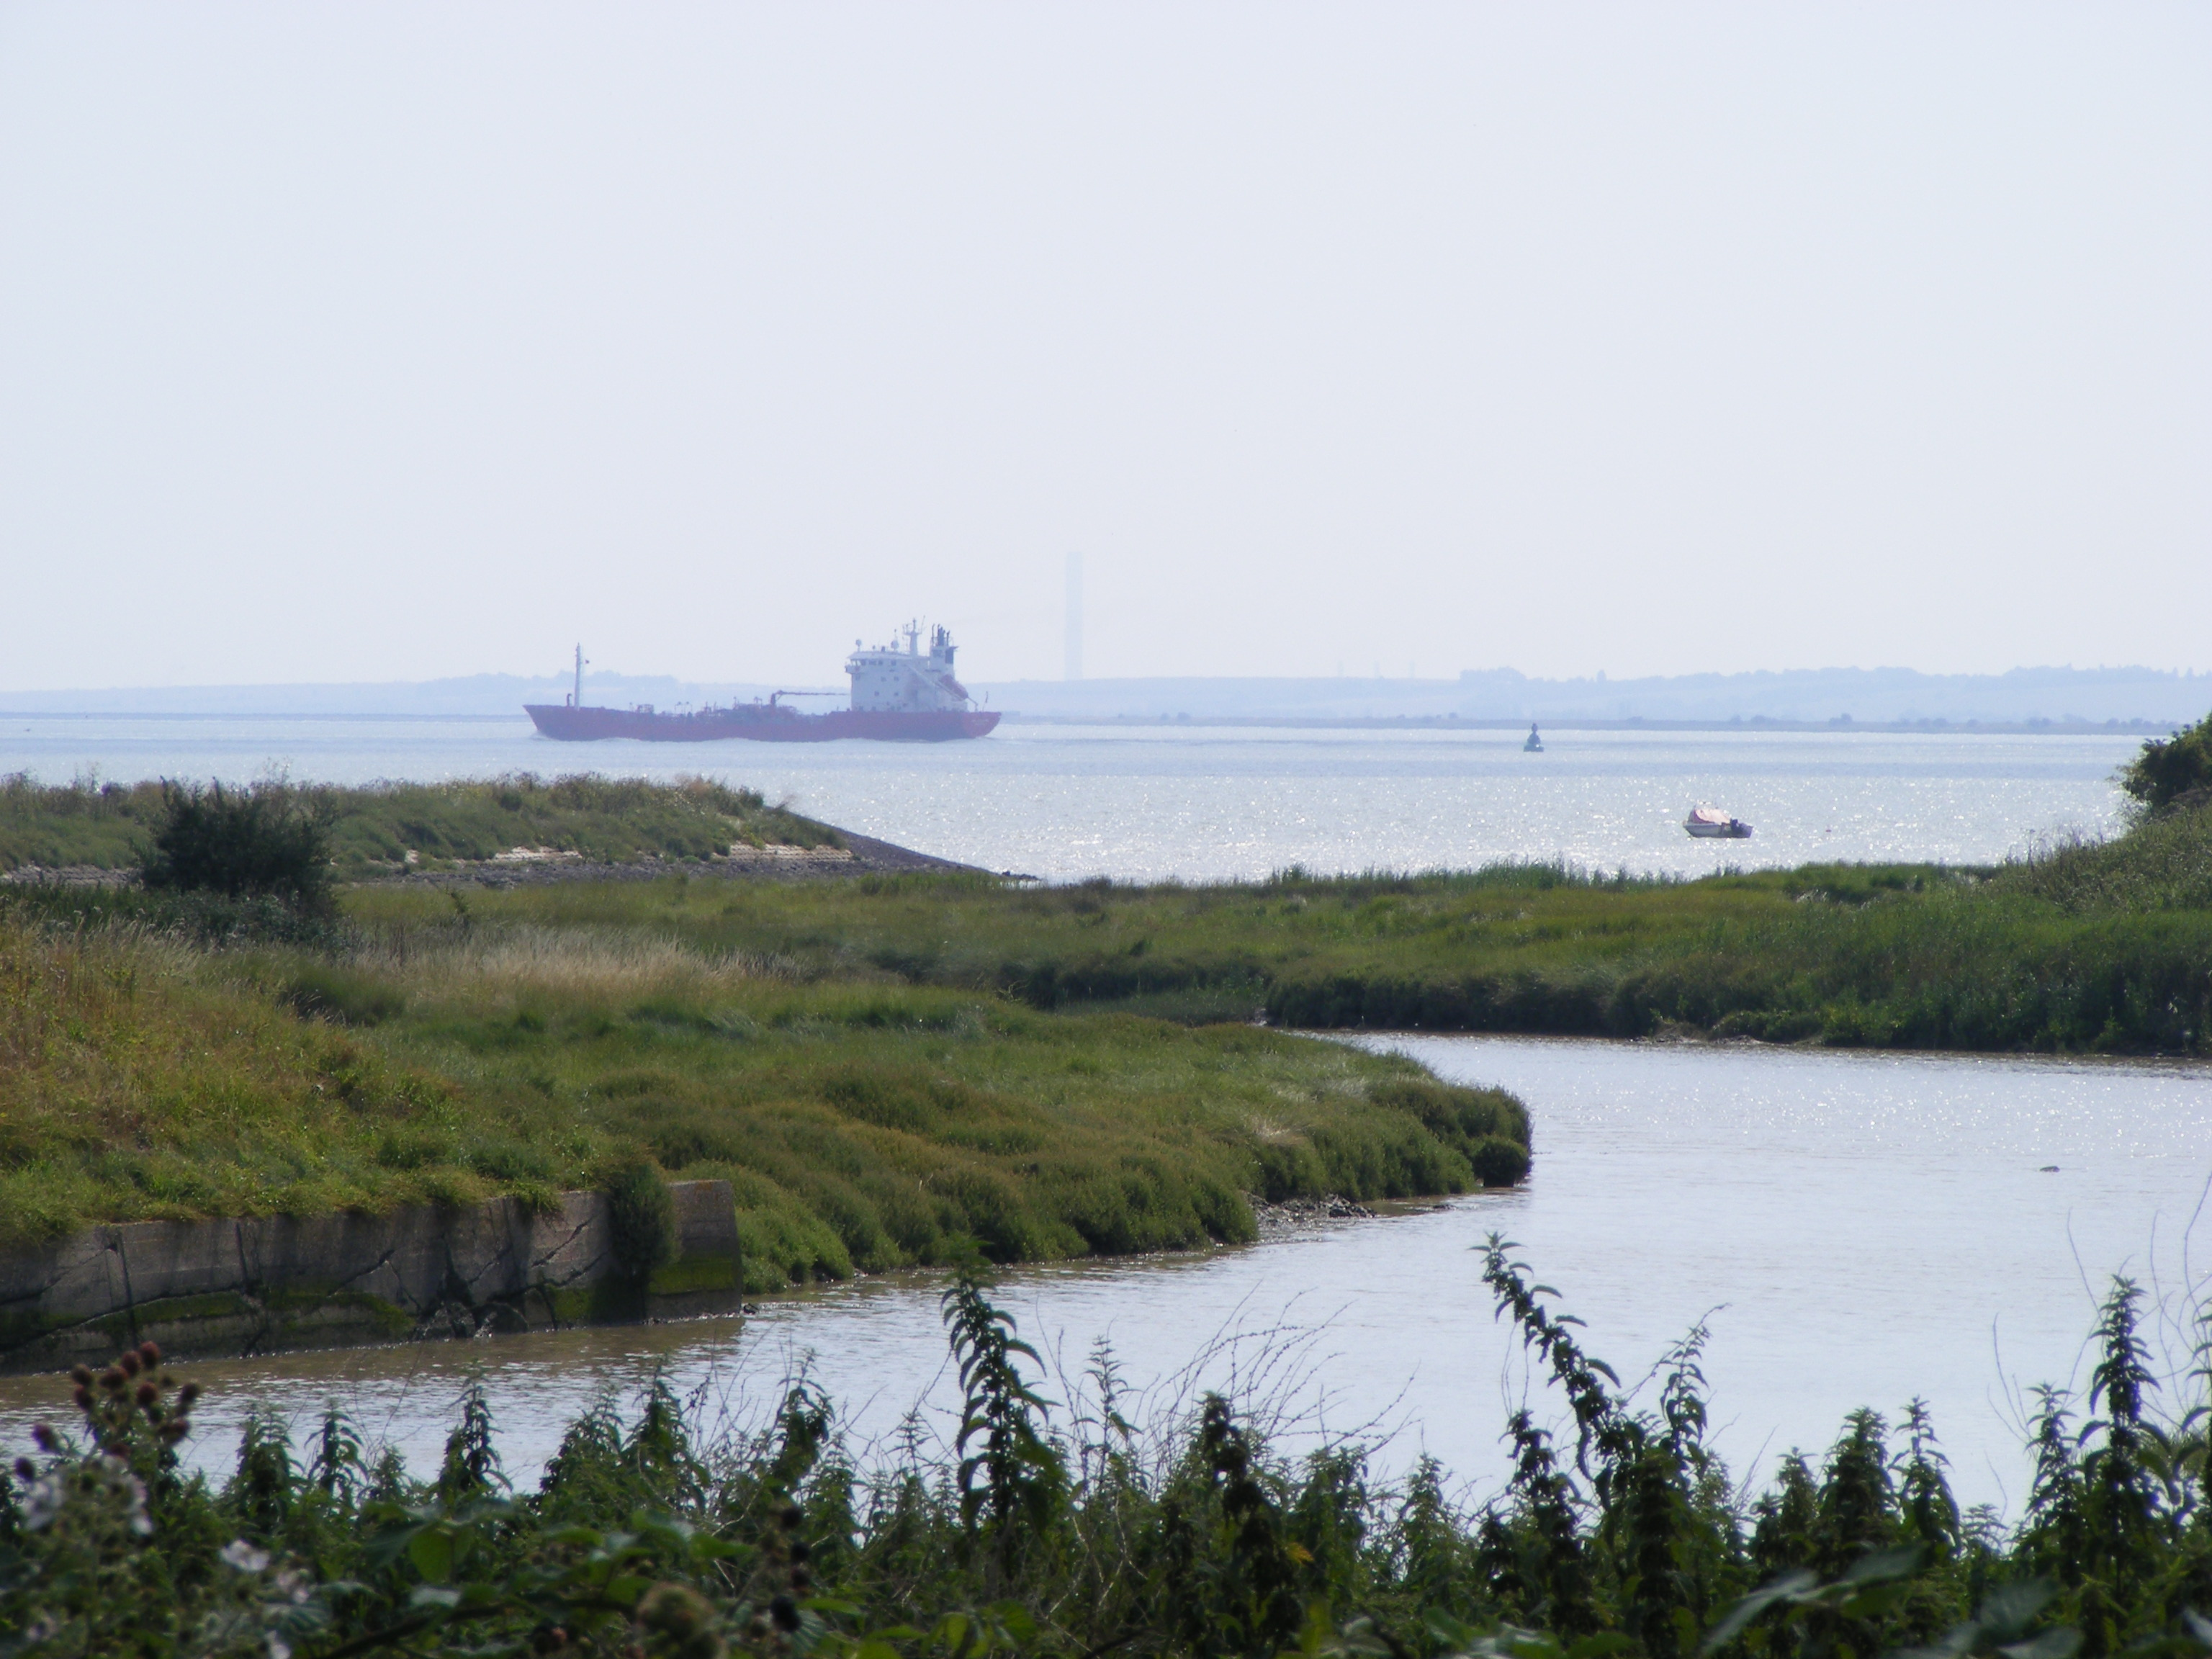 Thames Estuary Path opens | The Thames Path by Leigh Hatts